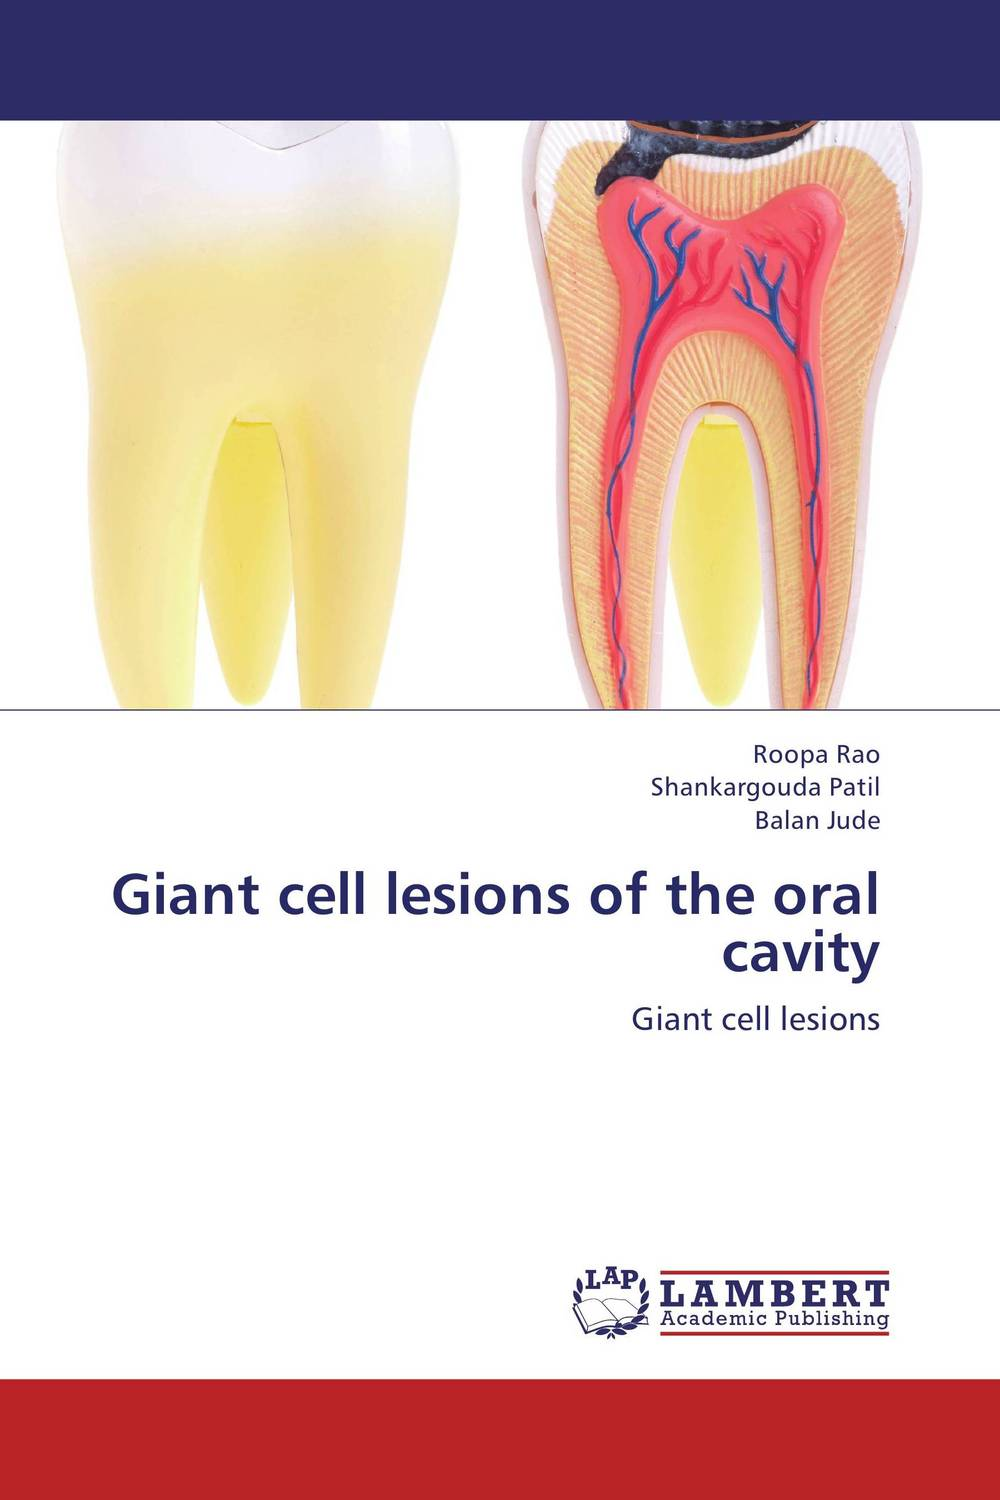 Giant cell lesions of the oral cavity assessment of oral pre cancer and cancerous lesions in gujarat state